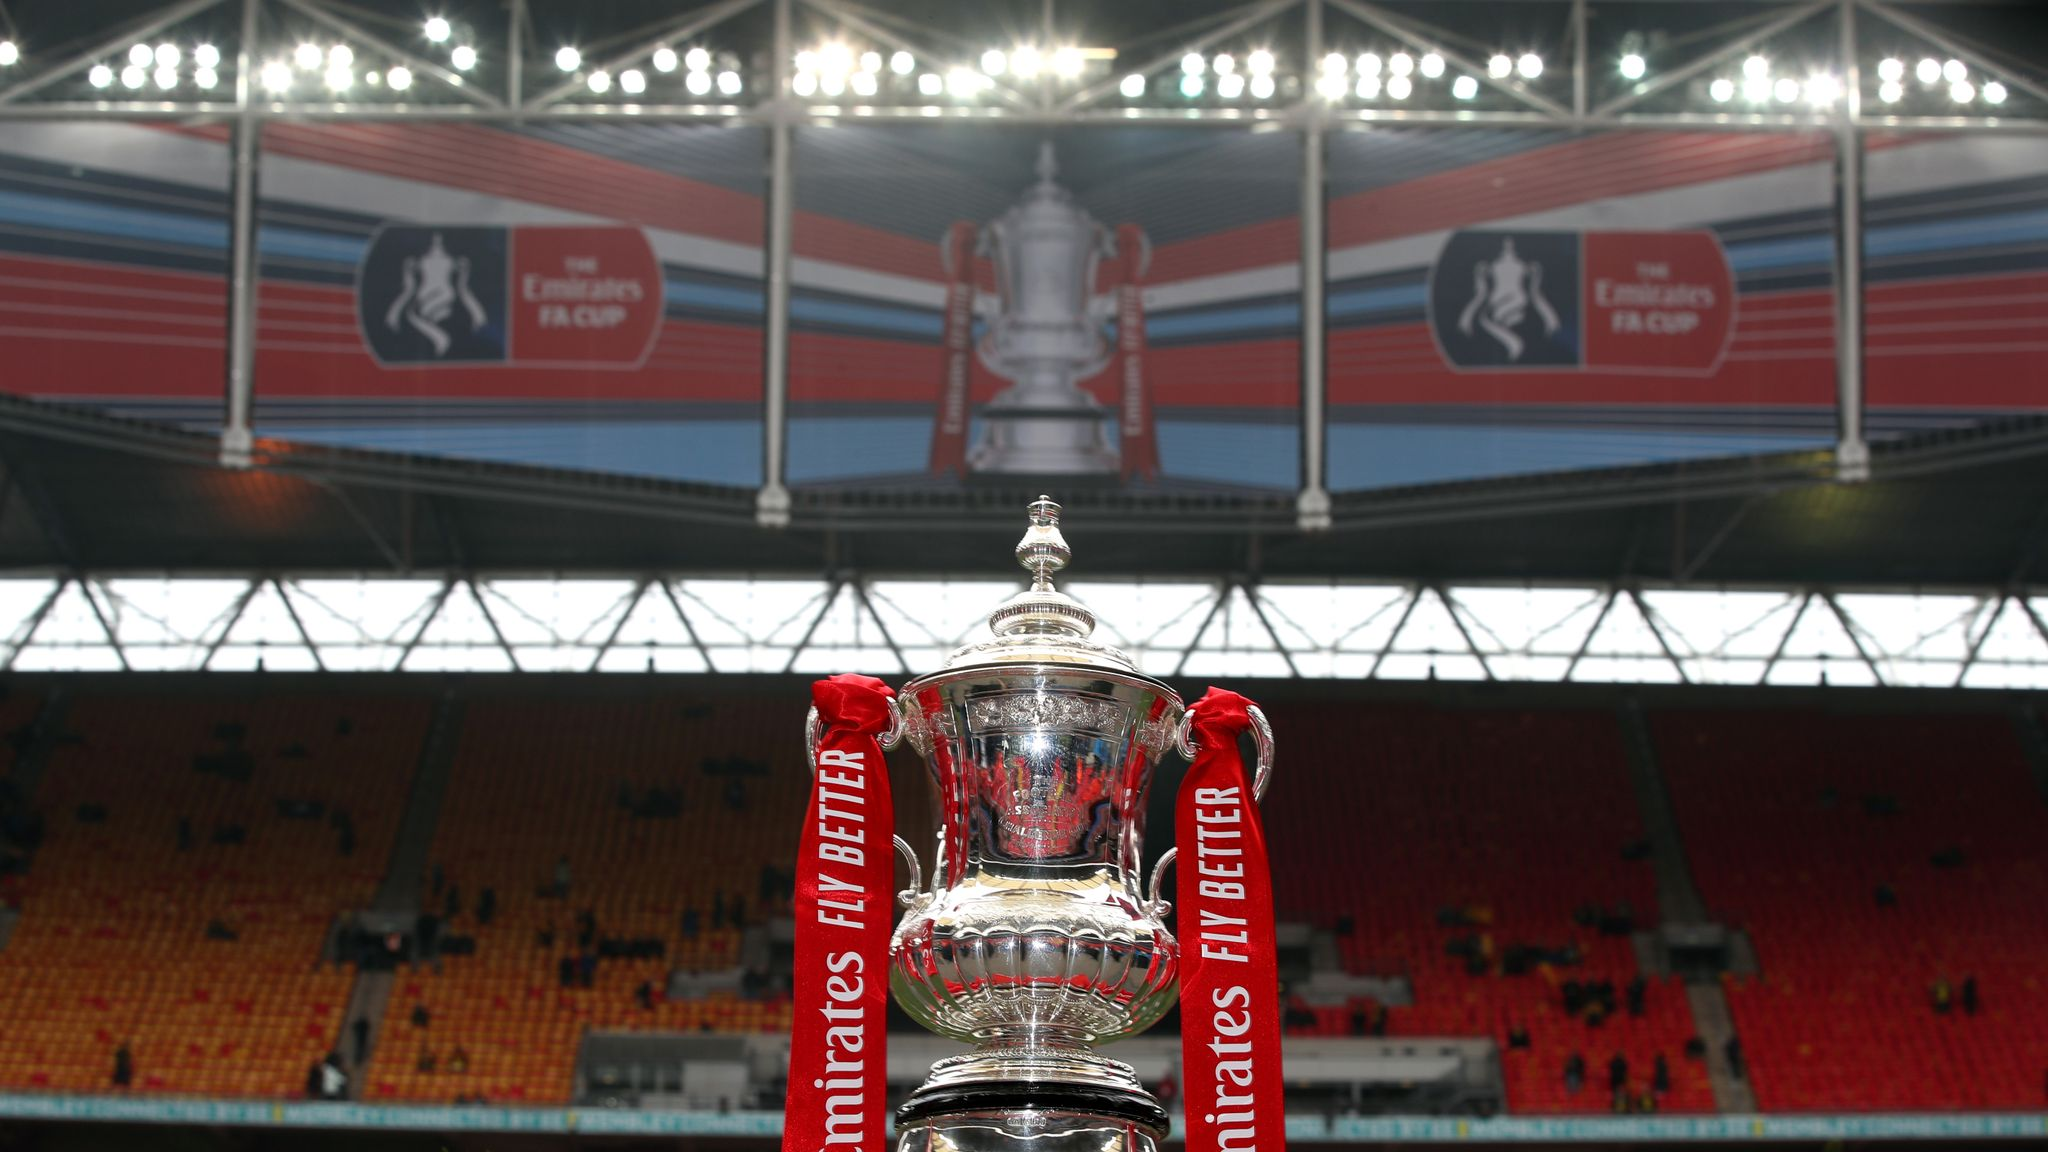 FA Cup second-round draw: Chichester away to Tranmere or Wycombe; Maldon & Tiptree at home